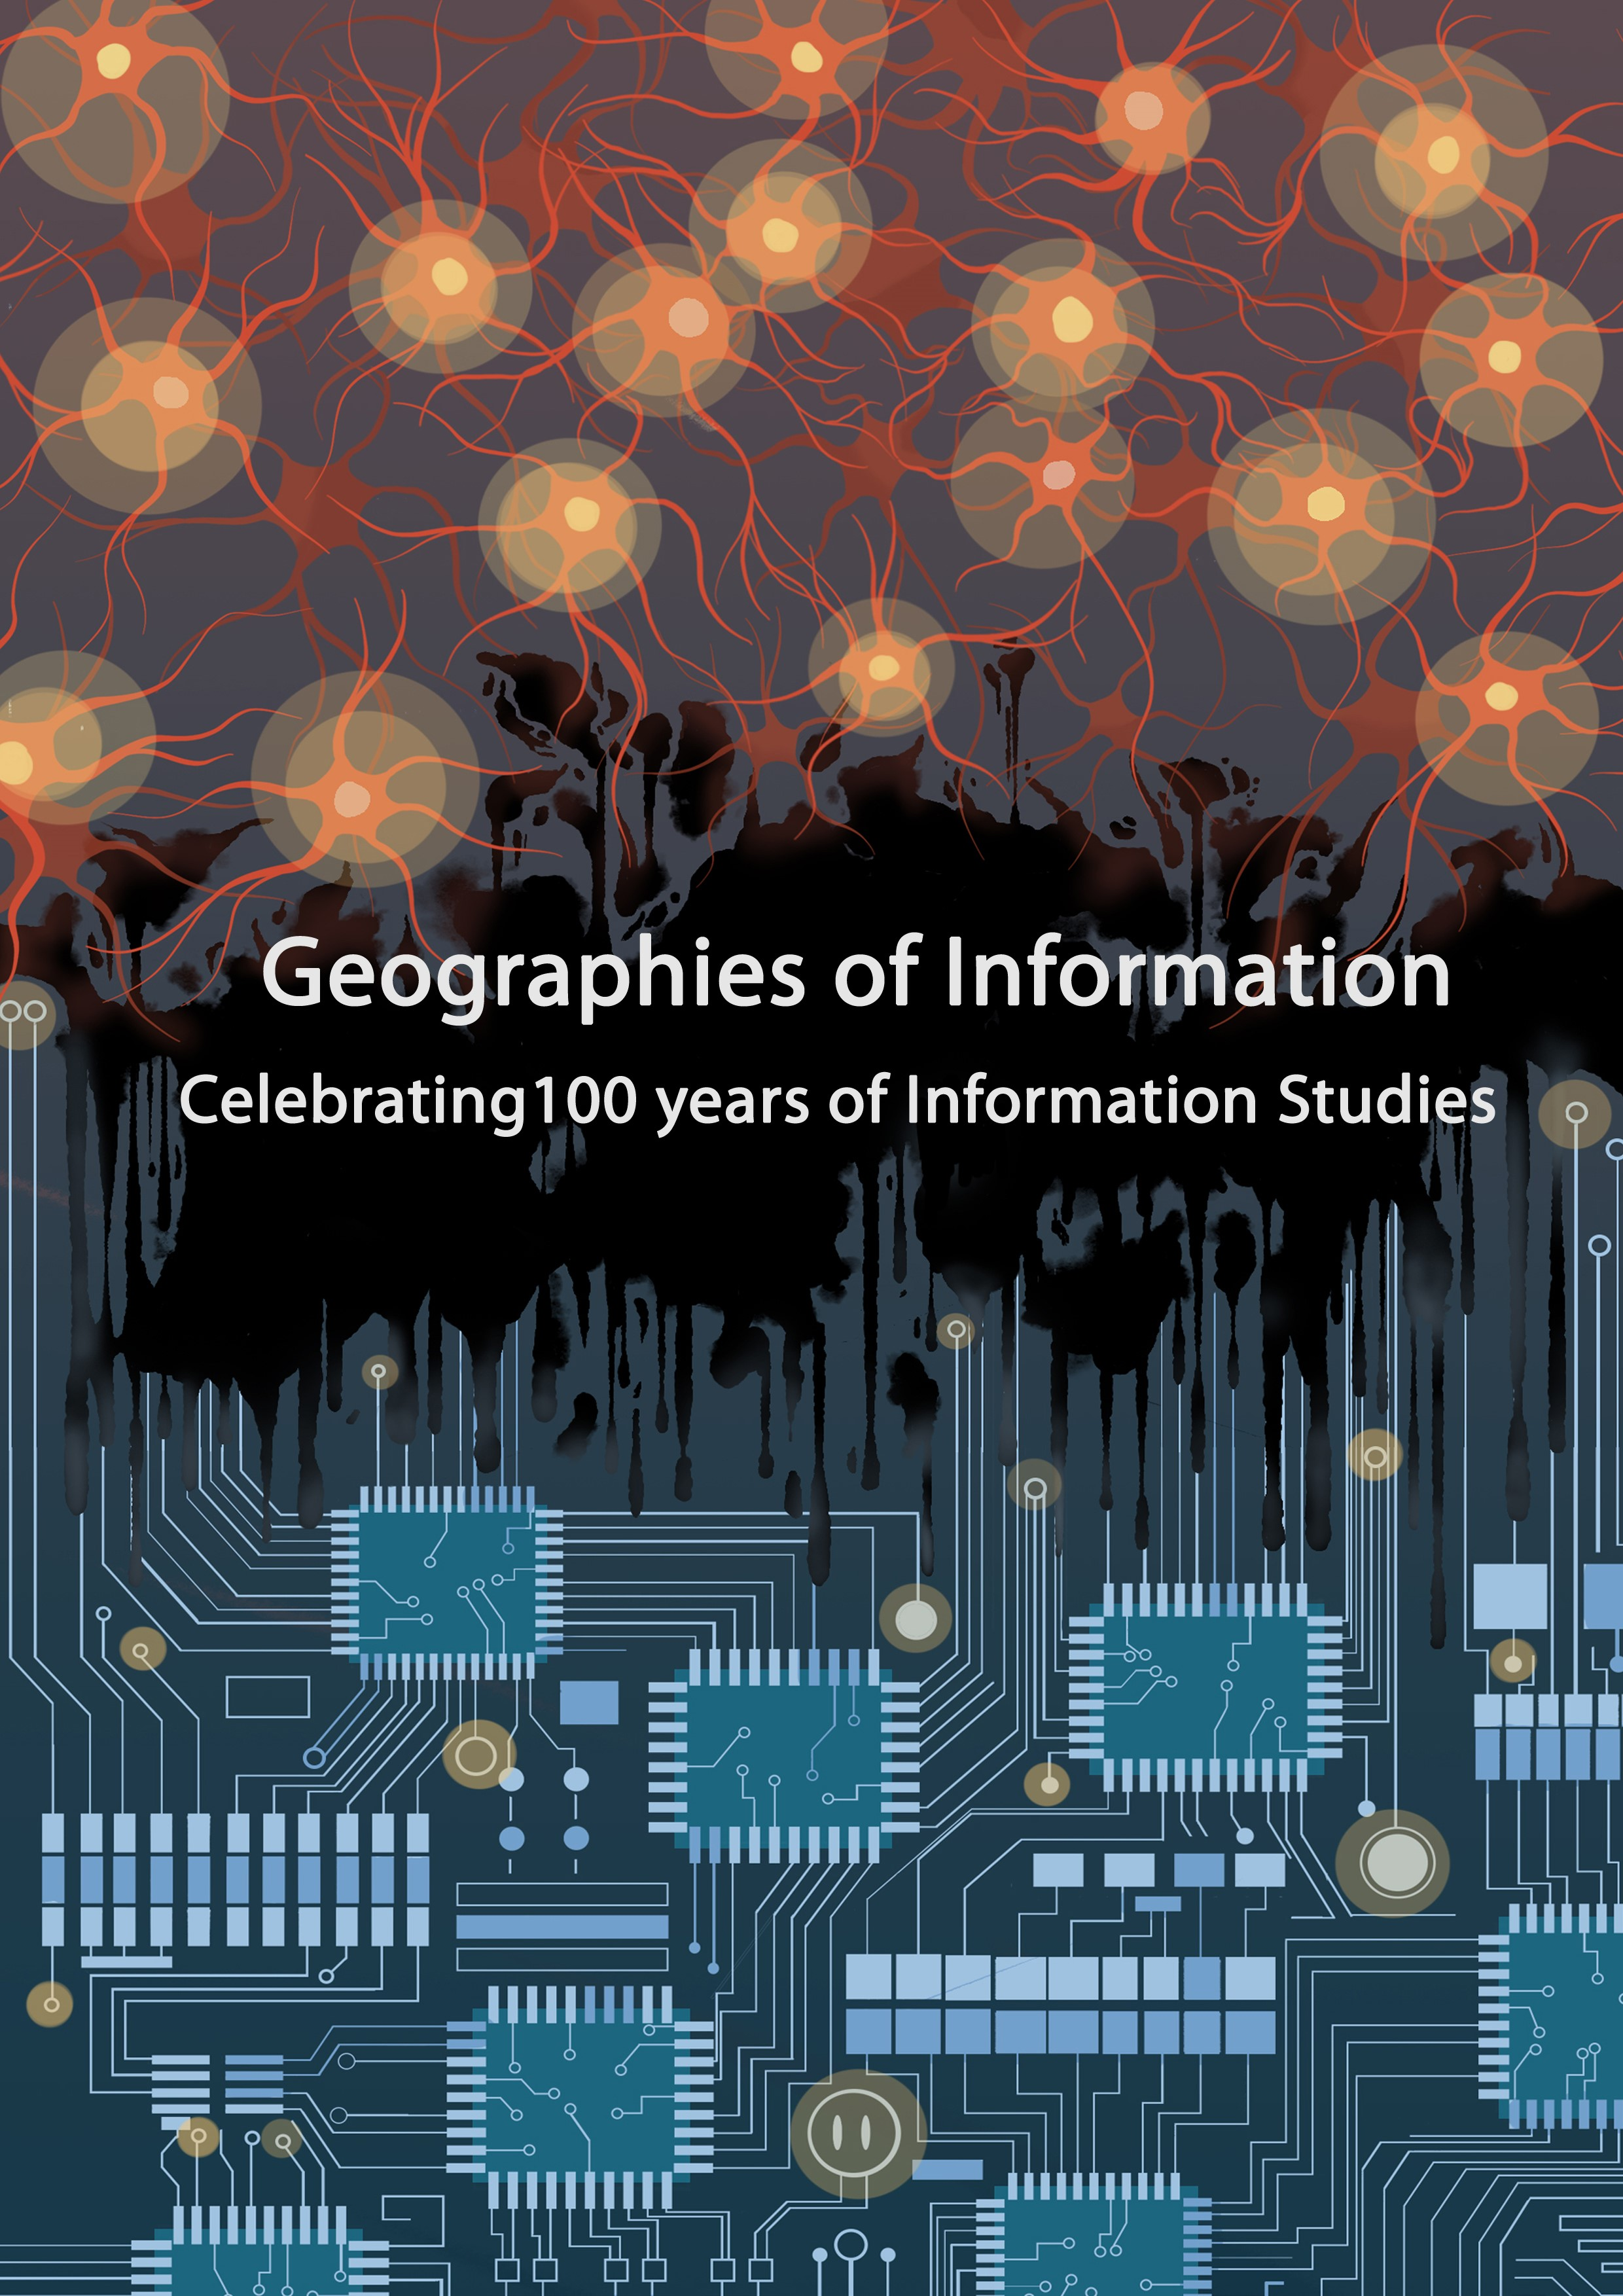 Geographies of Information logo